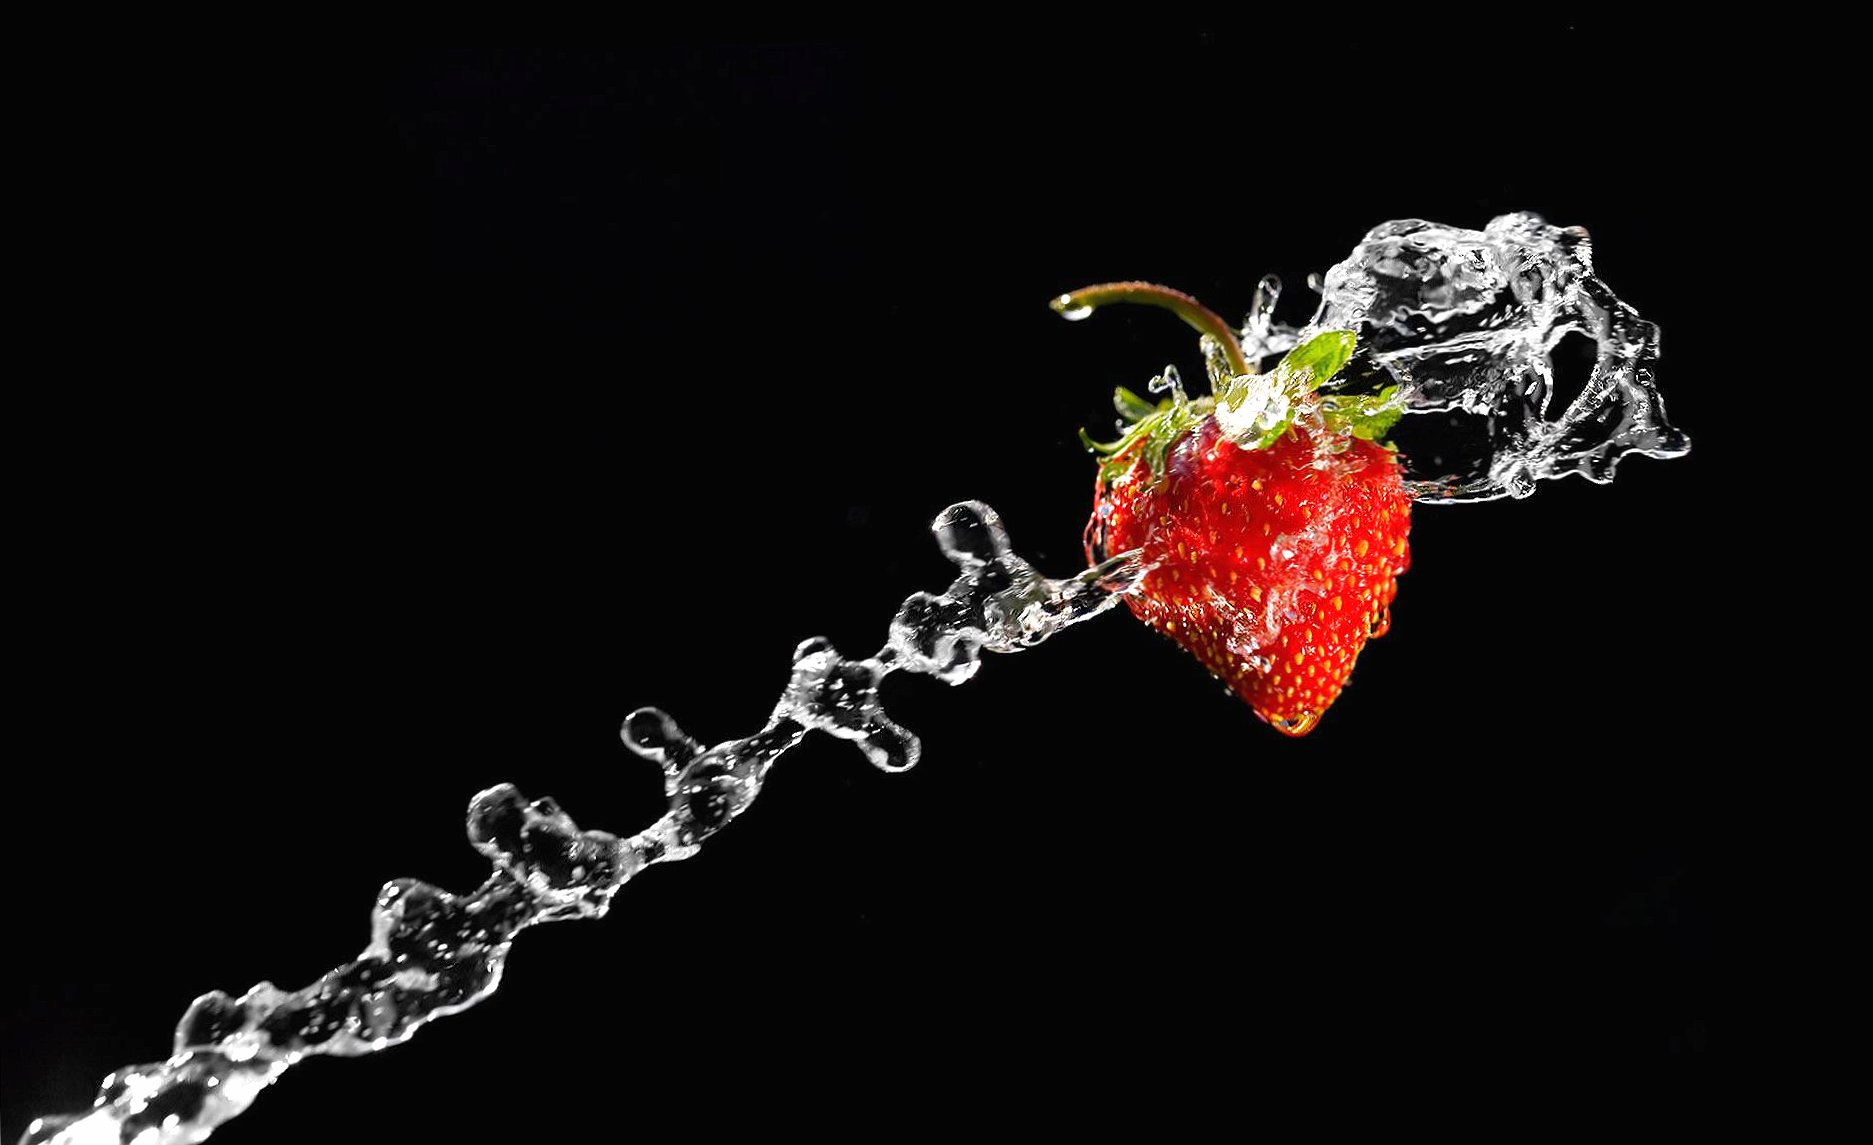 Water and strawberry wallpapers HD quality